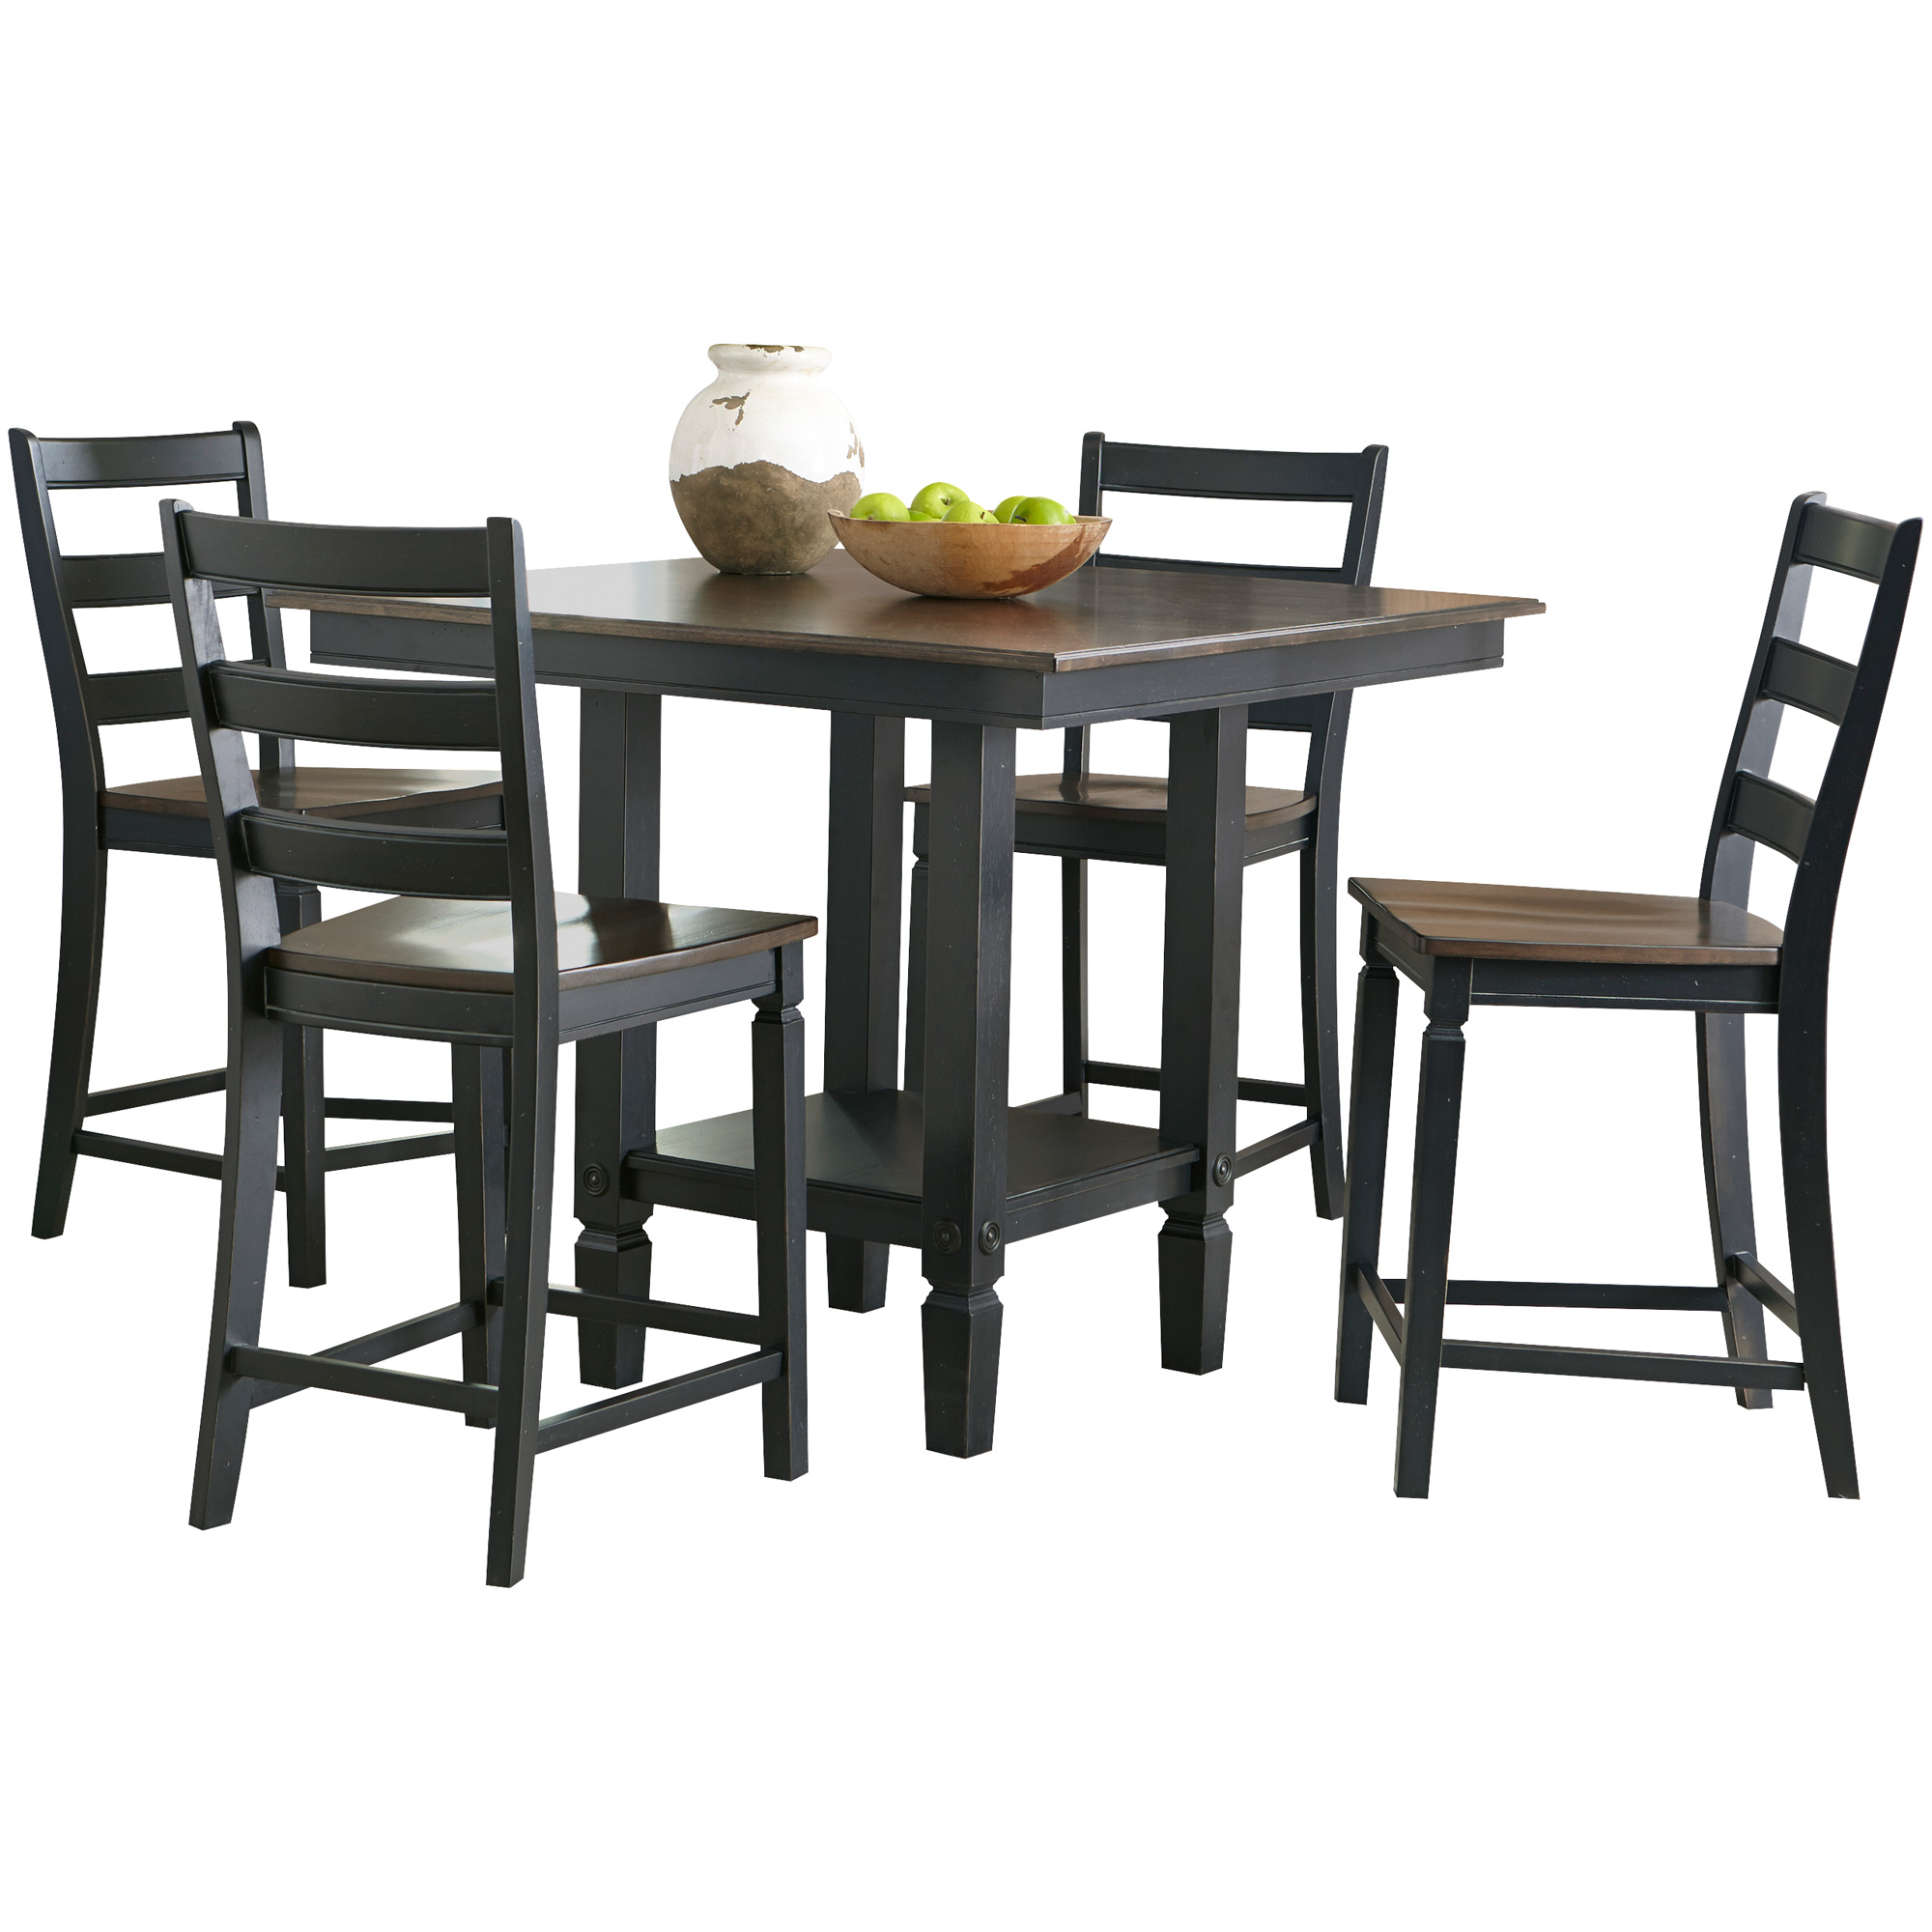 Intercon | Glennwood Black 5 Piece Counter Dining Set